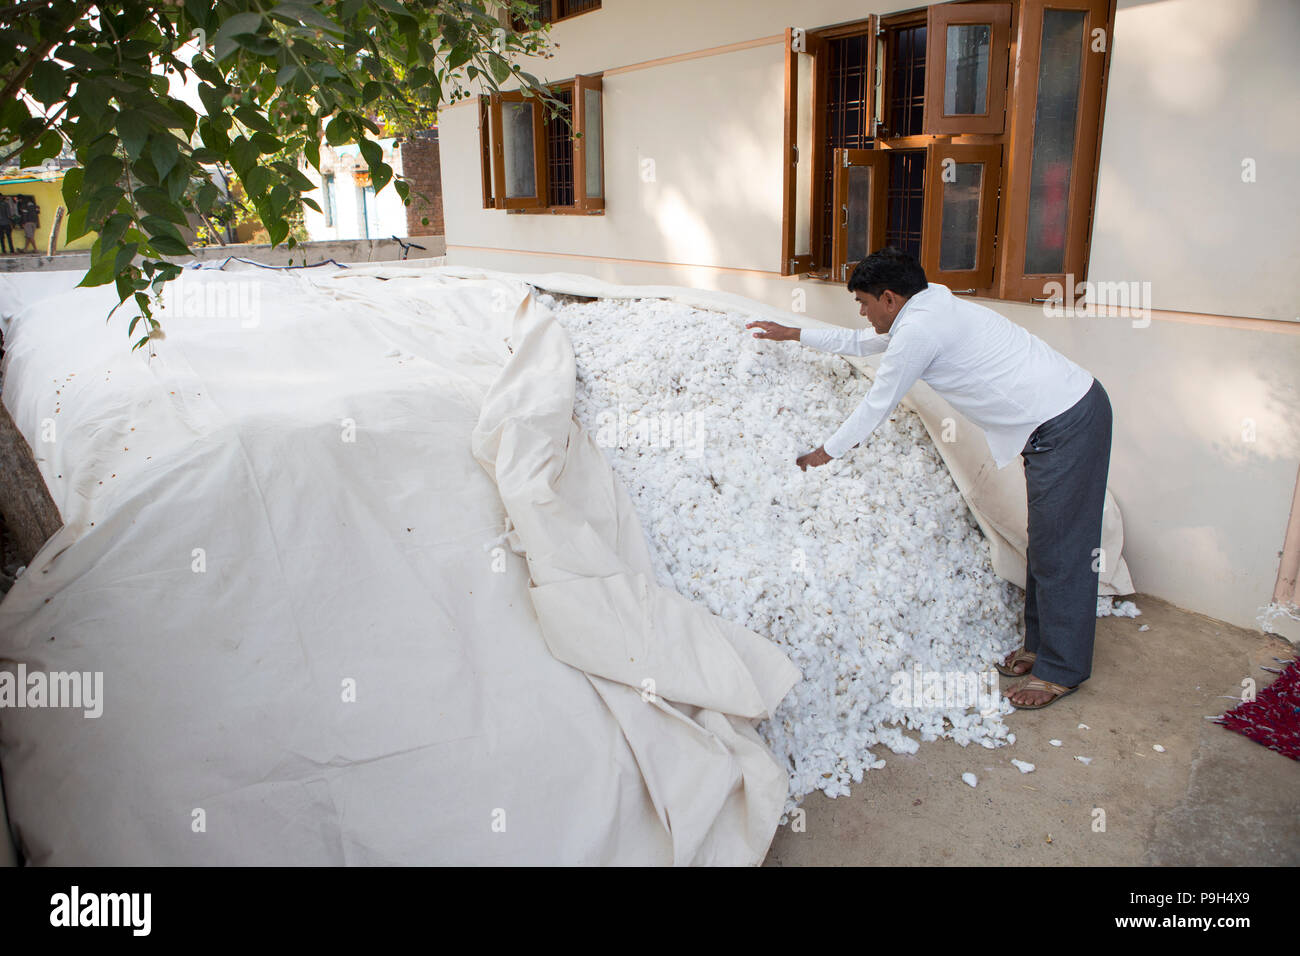 A cotton farmer covers hup his cotton harvest witha sheet outside his home in Madhya Pradesh, India - Stock Image